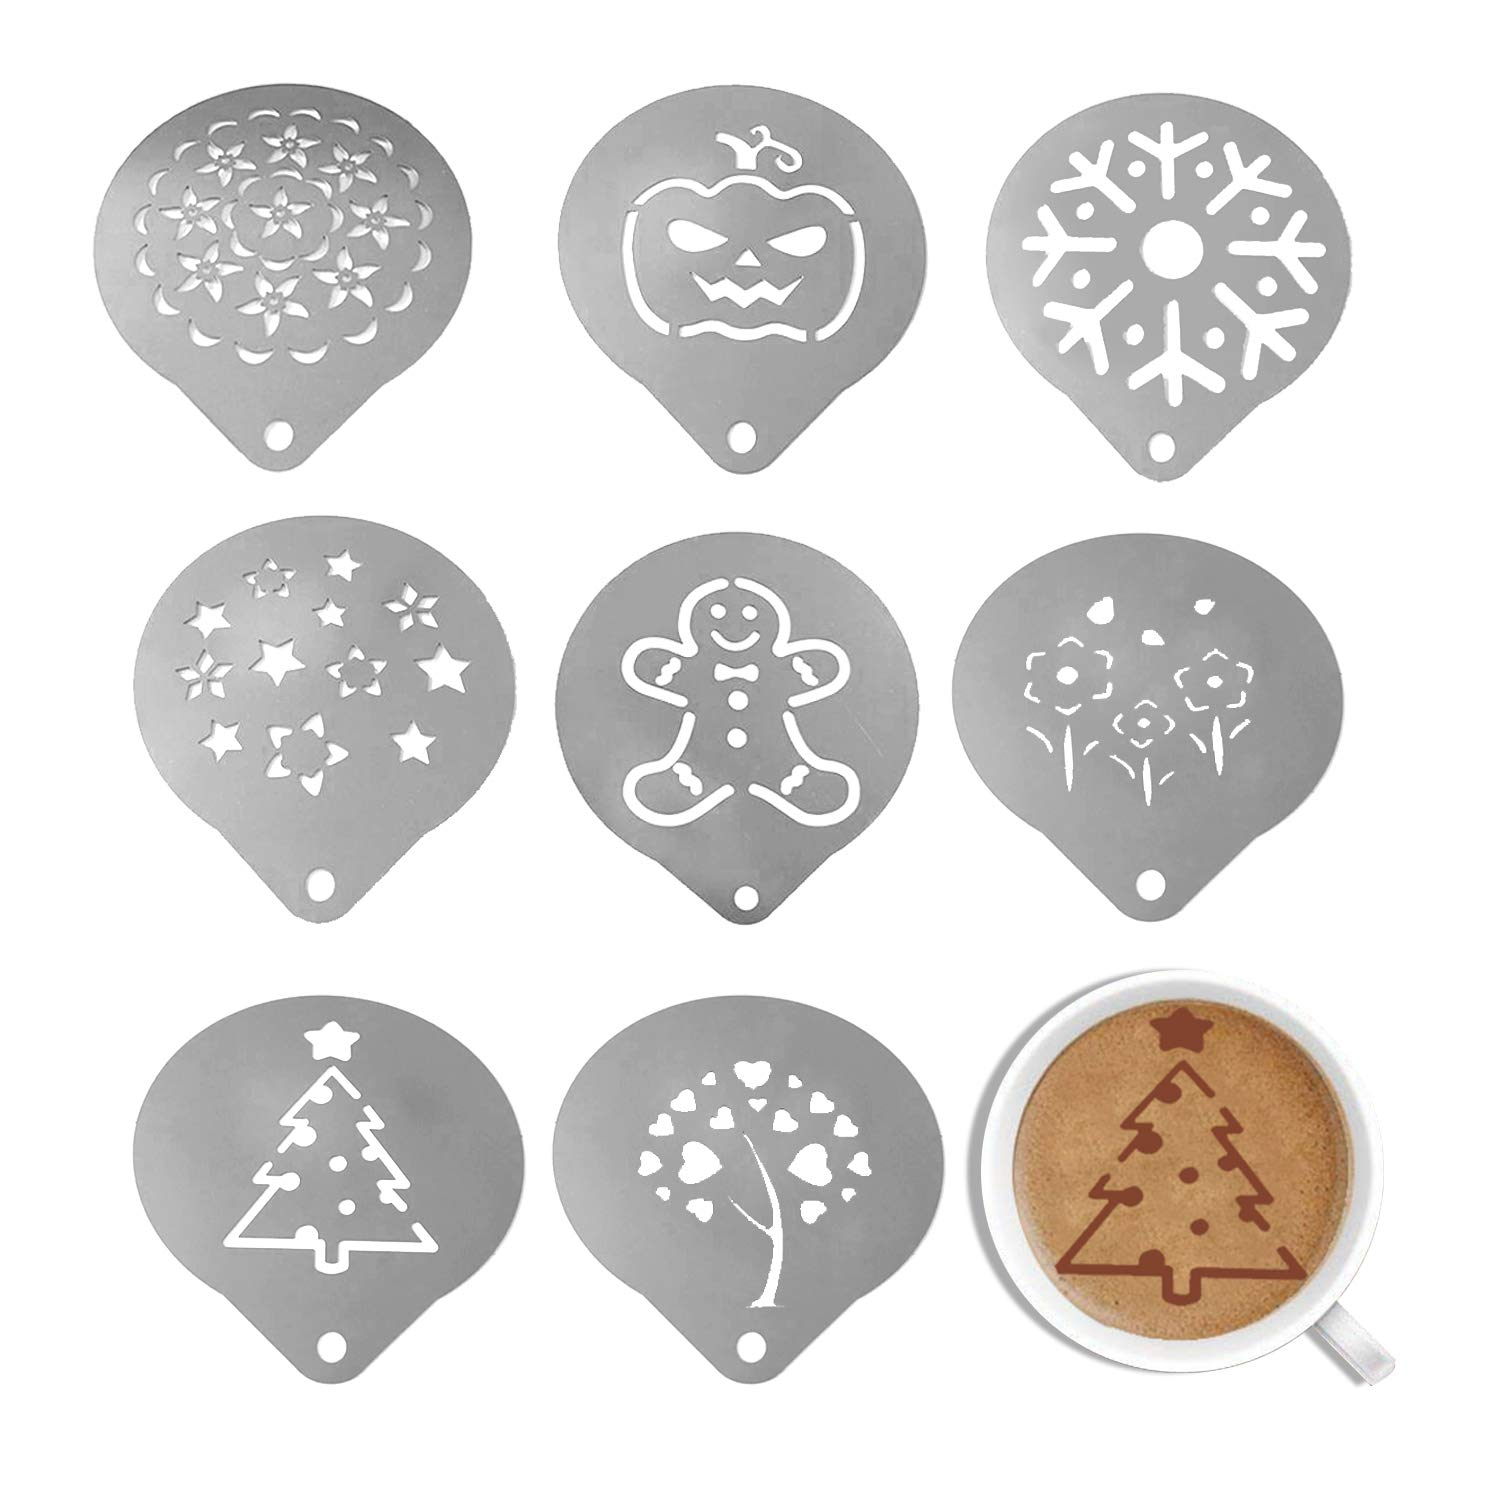 Coffee Decorating Stencils - YeeStone 8 PCS Stainless Steel Barista Coffee Stencils Coffee Pattern Template Coffee Gadgets - For Coffee, Cakes And Bakery